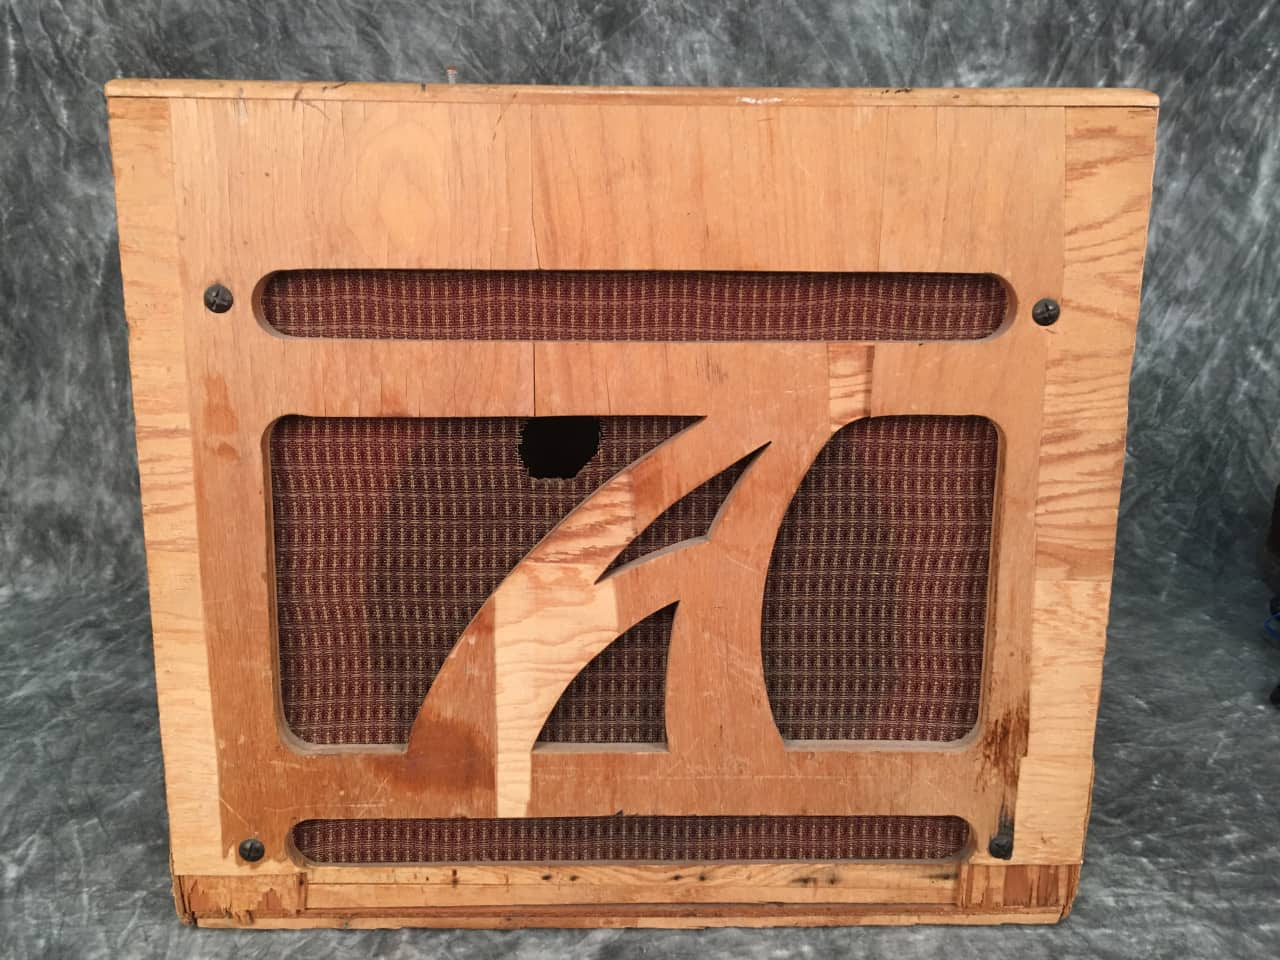 alamo work from home alamo model amp 3 working project 50 s natural reverb 4162